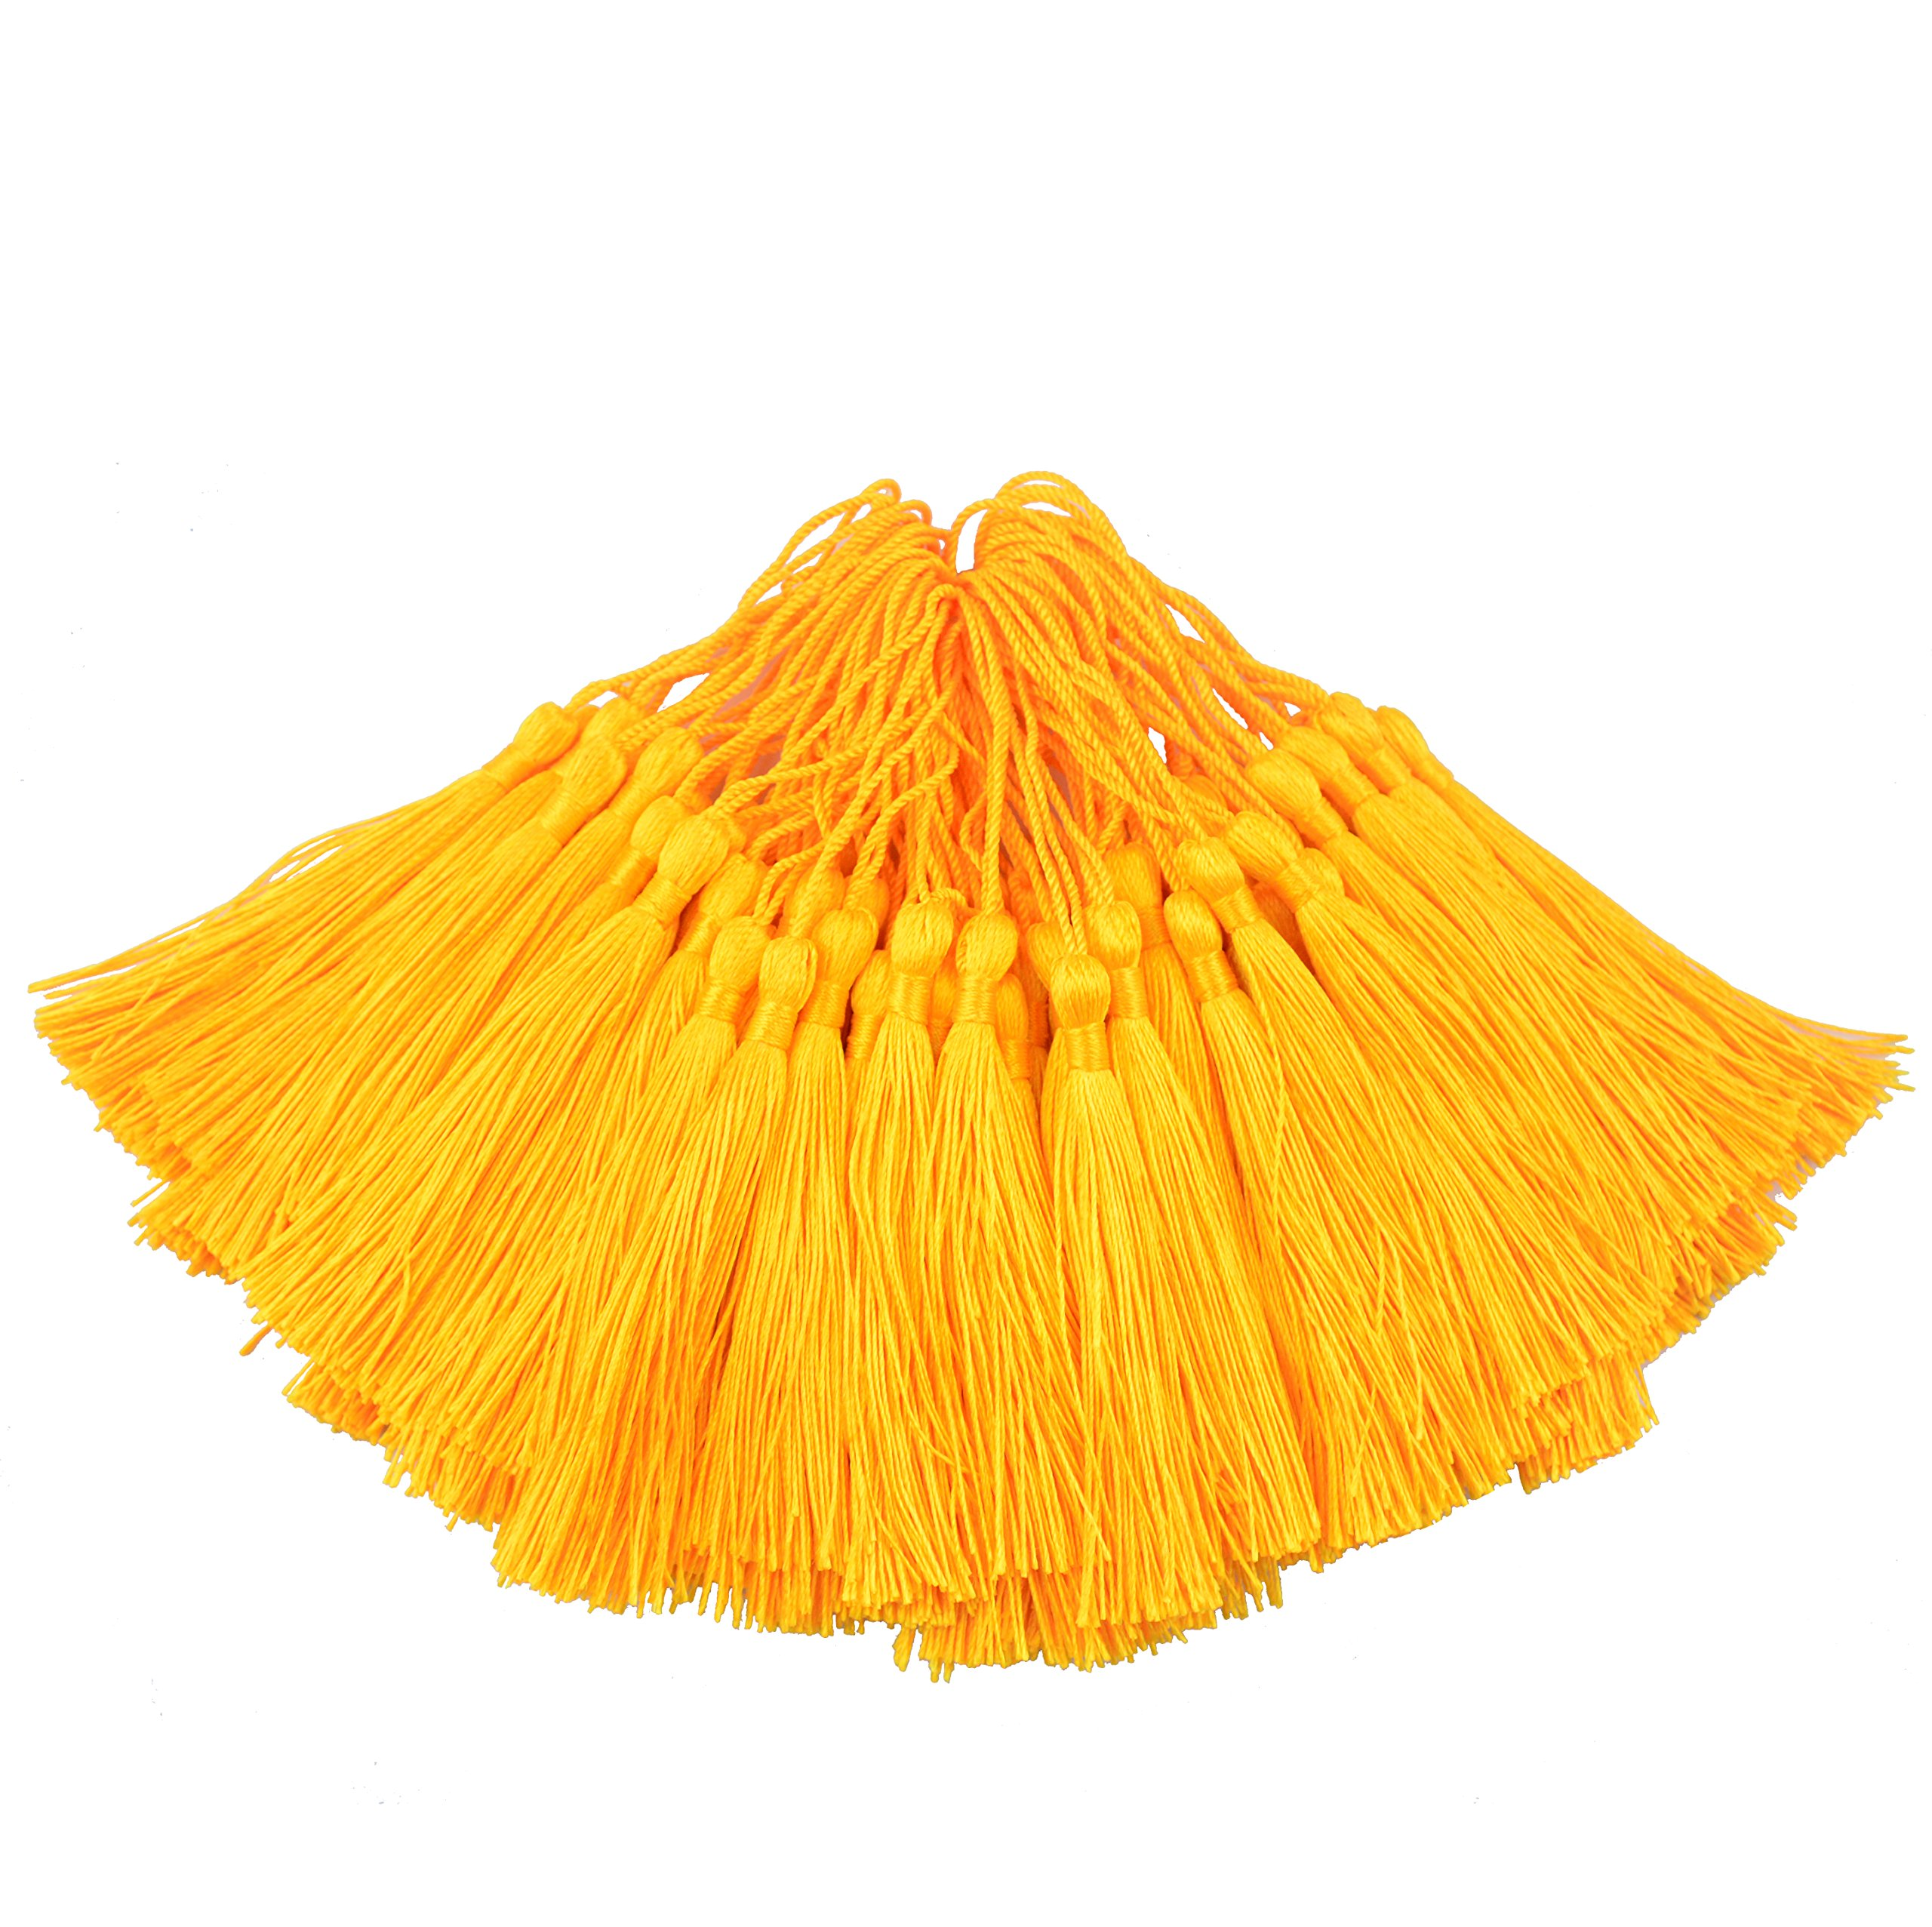 100pcs 13cm/5 Inch Silky Floss bookmark Tassels with 2-Inch Cord Loop and Small Chinese Knot for Jewelry Making, Souvenir, Bookmarks, DIY Craft Accessory (Royal Gold)